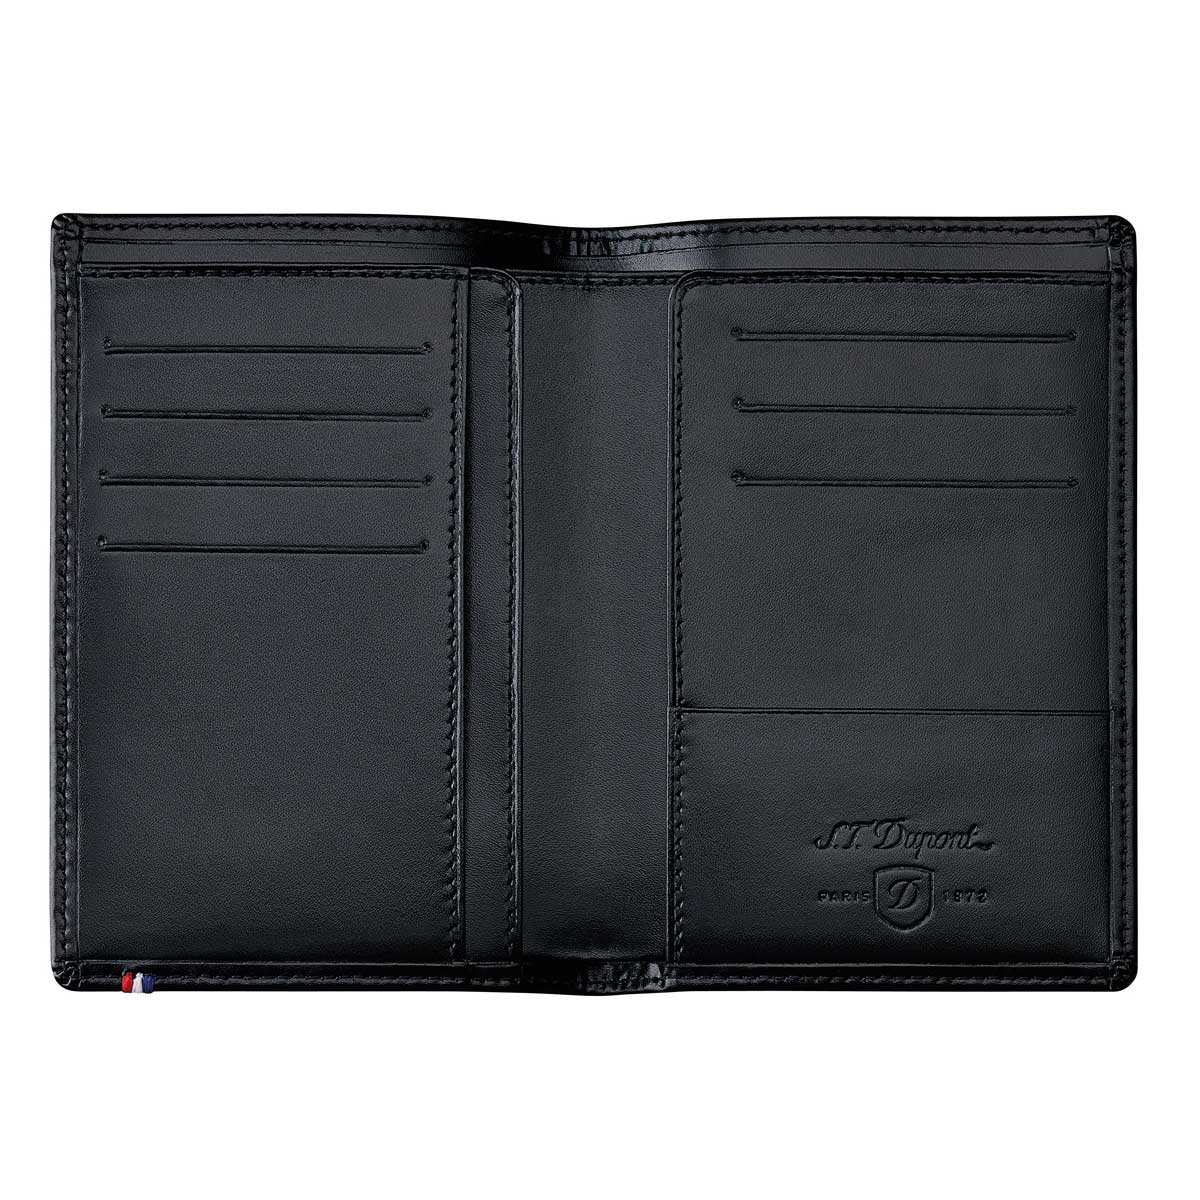 05a22b997562 S. T. Dupont Line D Black leather men's vertical wallet for 7 cards. RFID  protection. and zippered coin pocket.